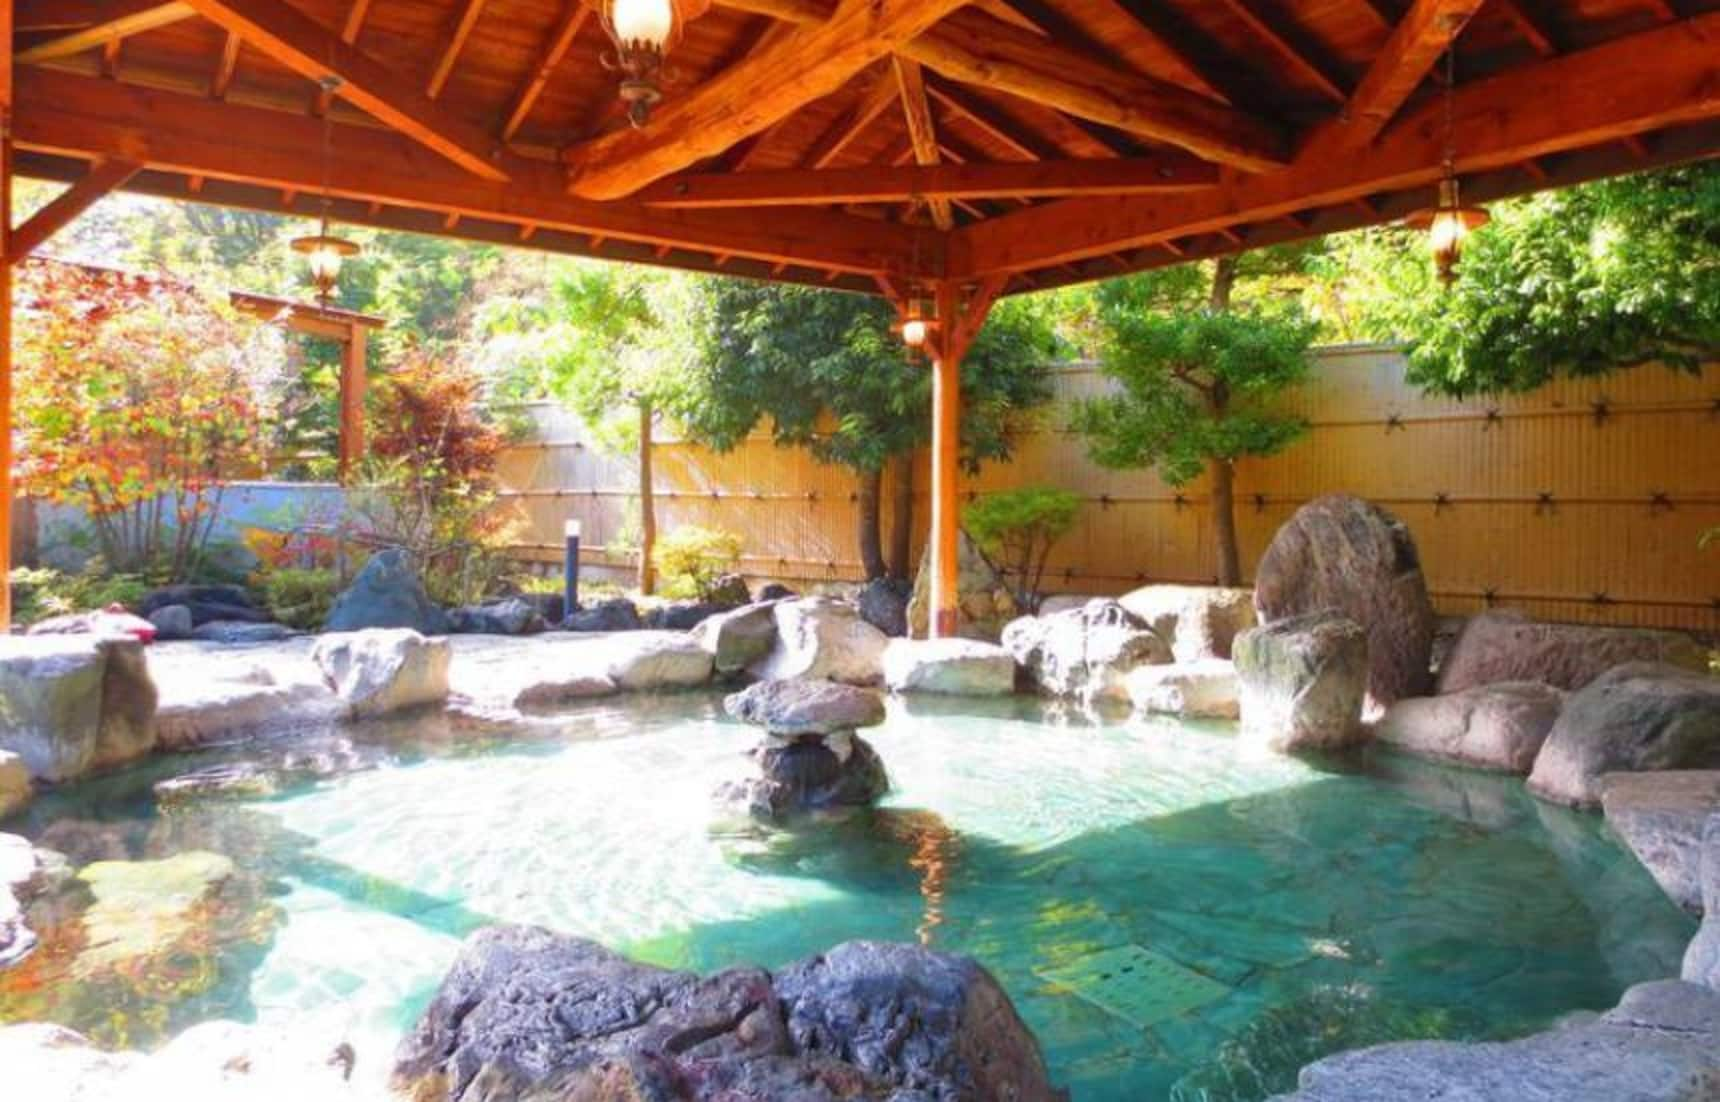 10 Best Spots for Onsen Day Trips from Tokyo